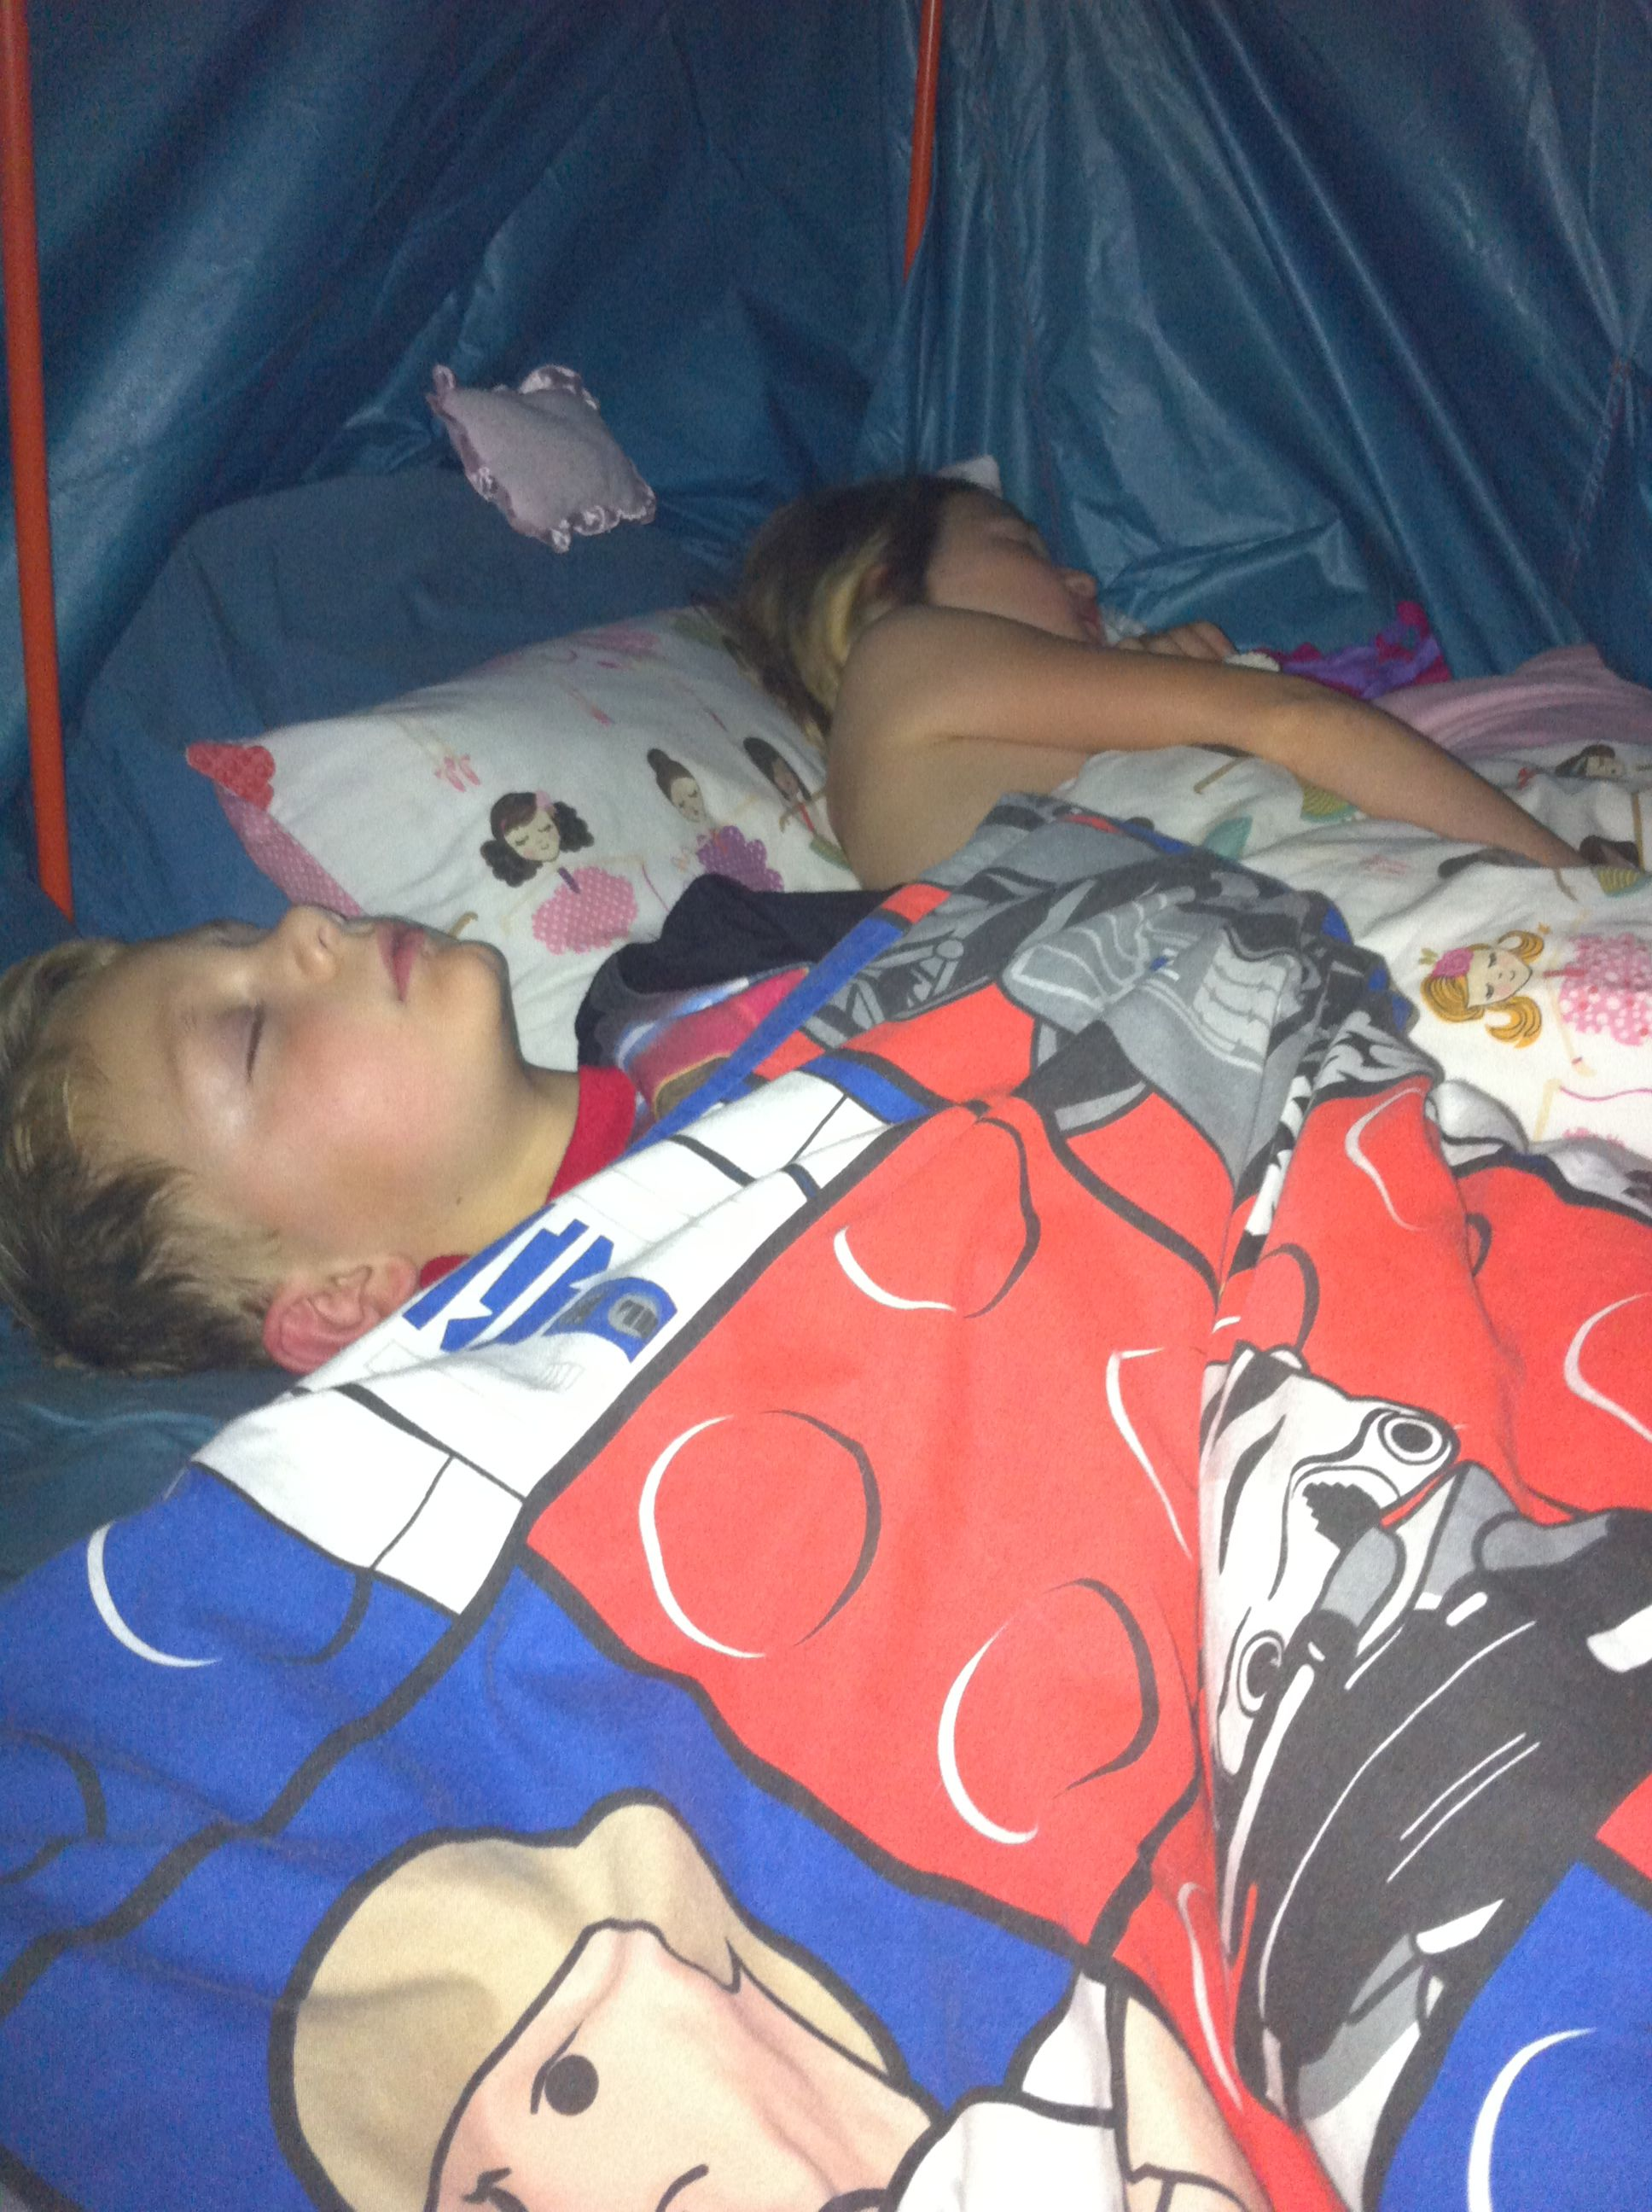 The perfect end to a day making camps - sleeping in your Kidcampz Play Tent. Night night!